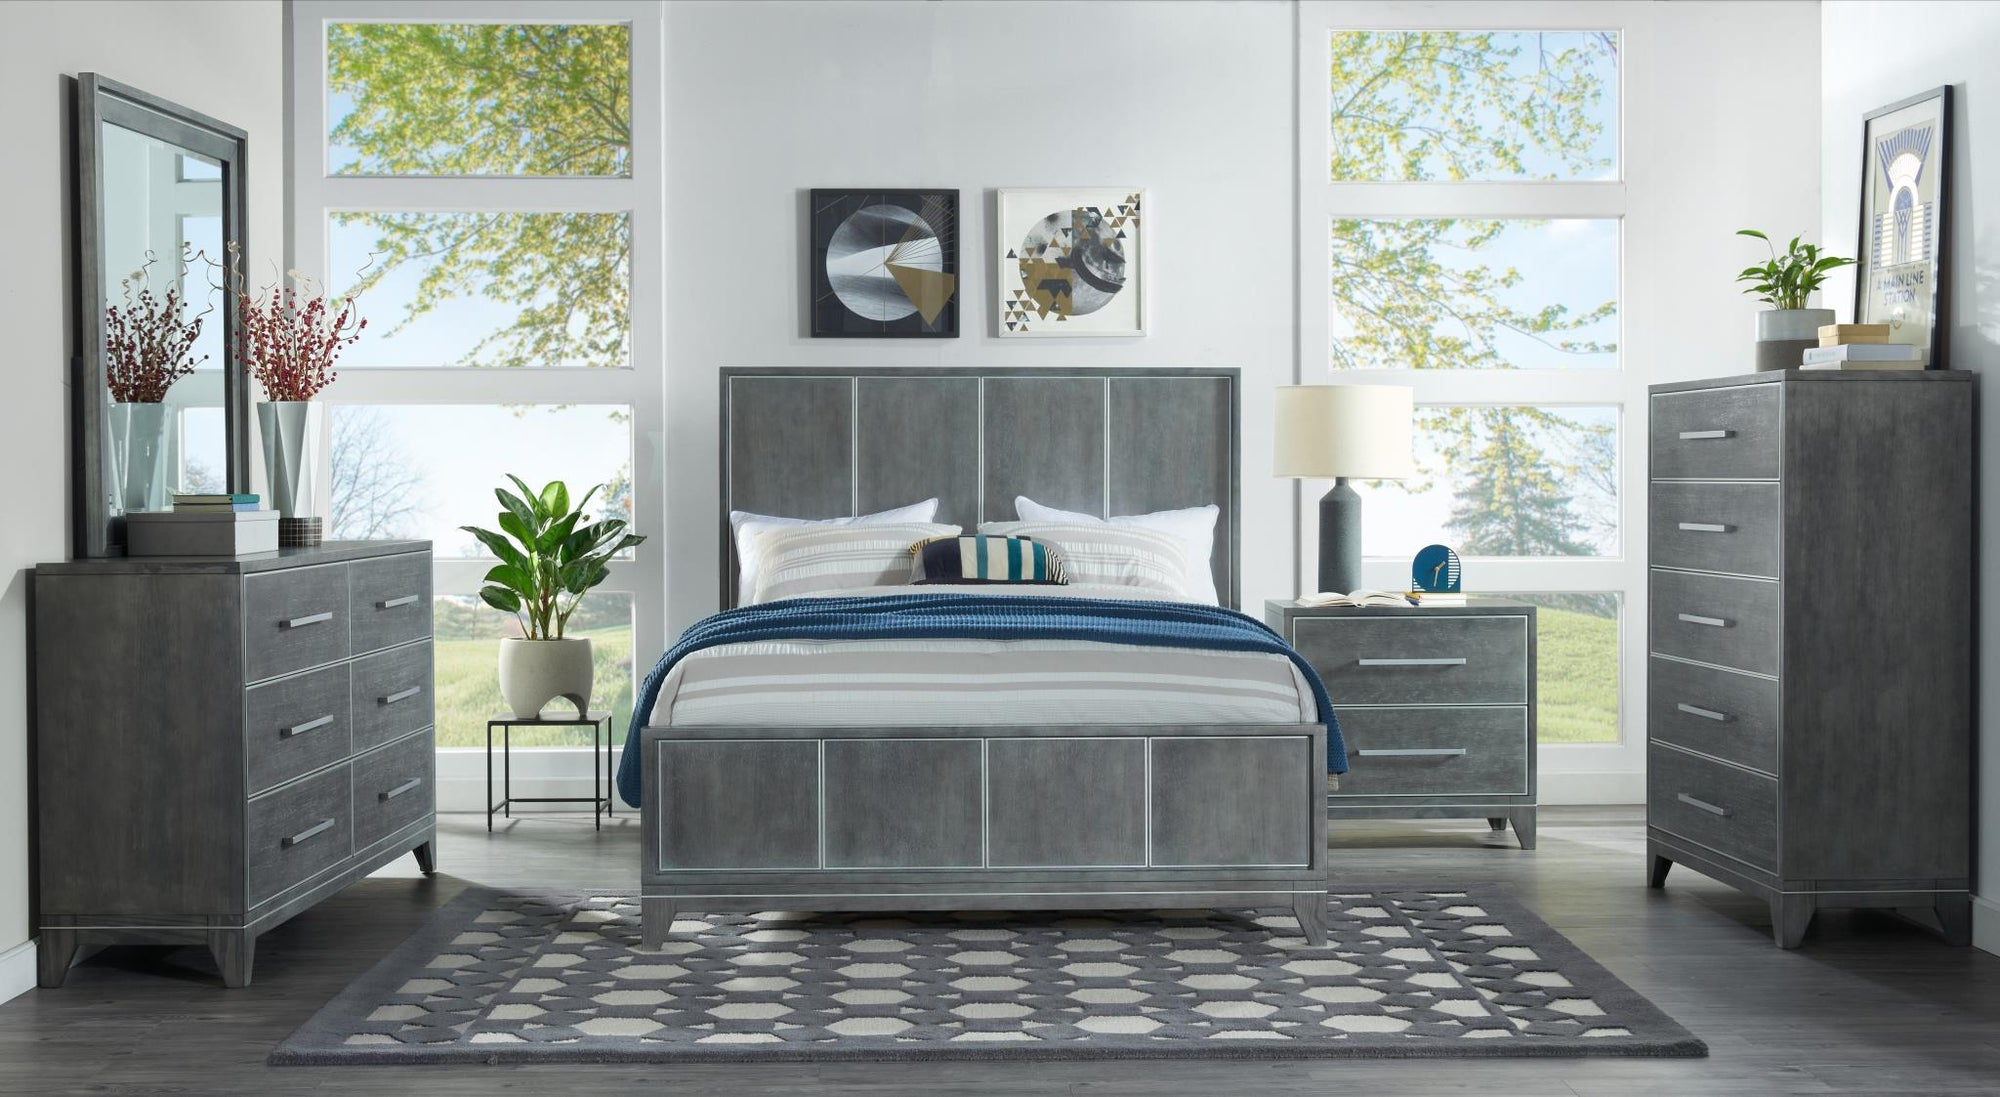 Slate Grey 4PC Bedroom Set - KTL Furniture